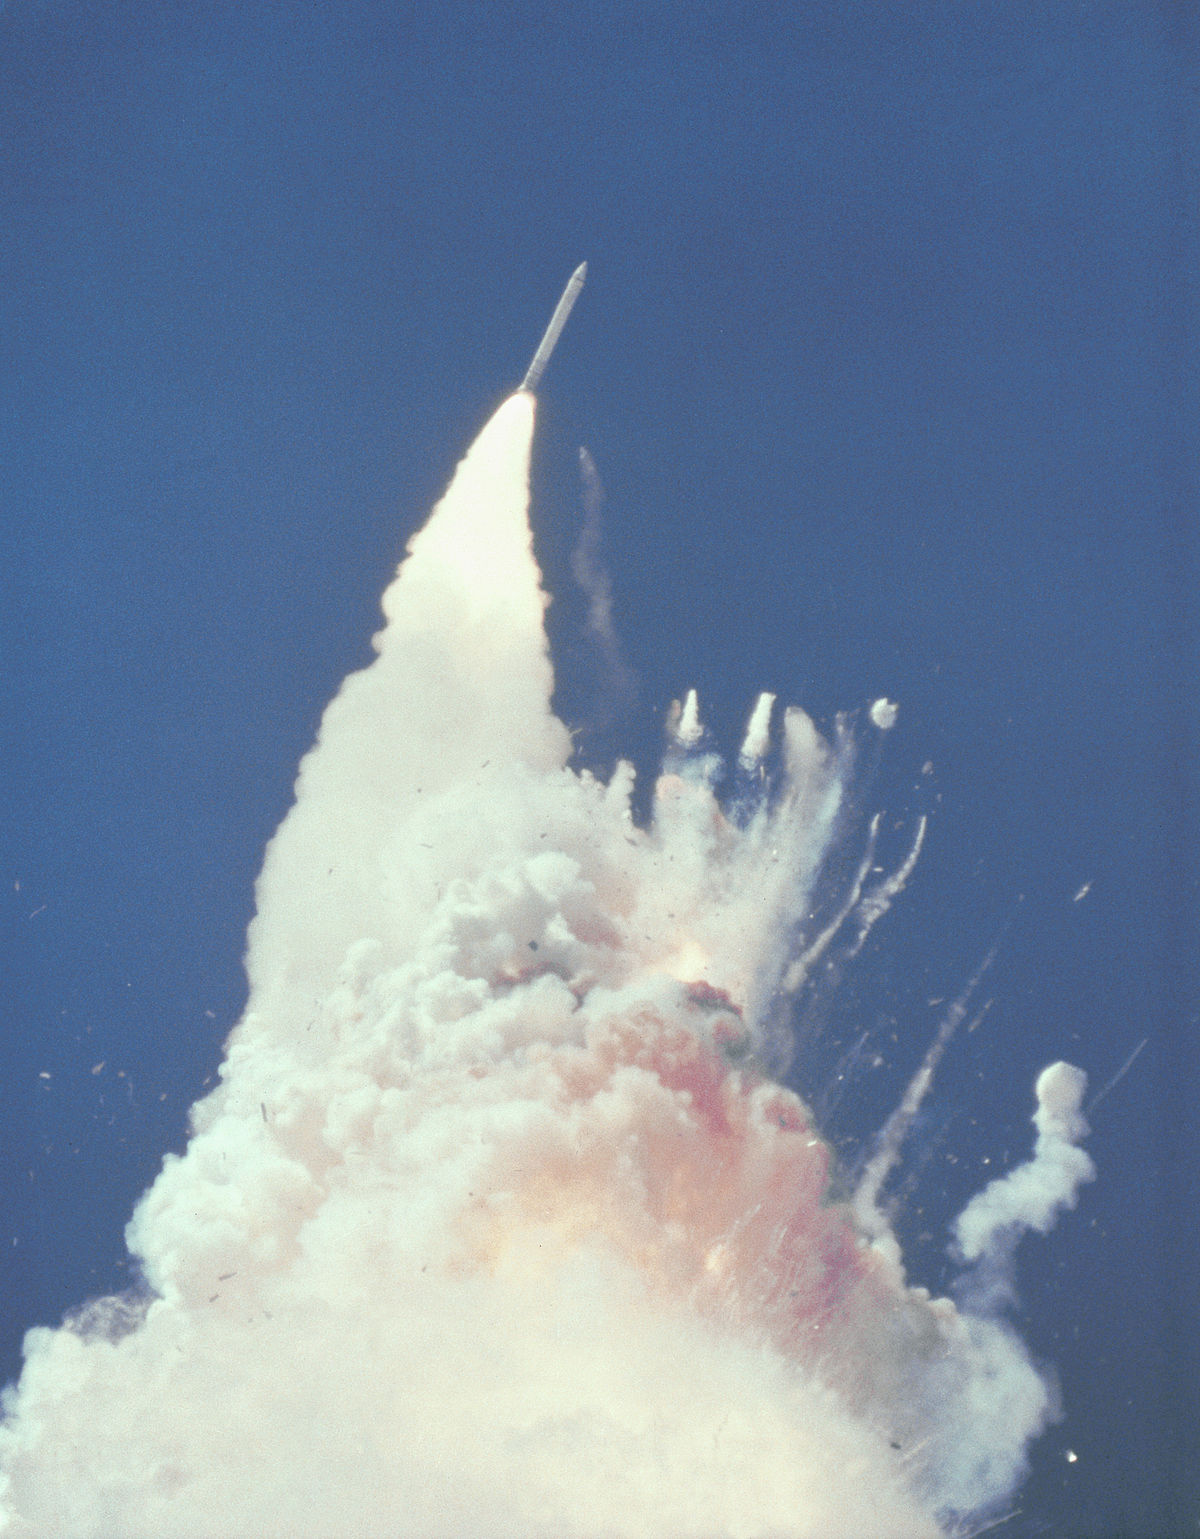 columbia space shuttle challenger - photo #18